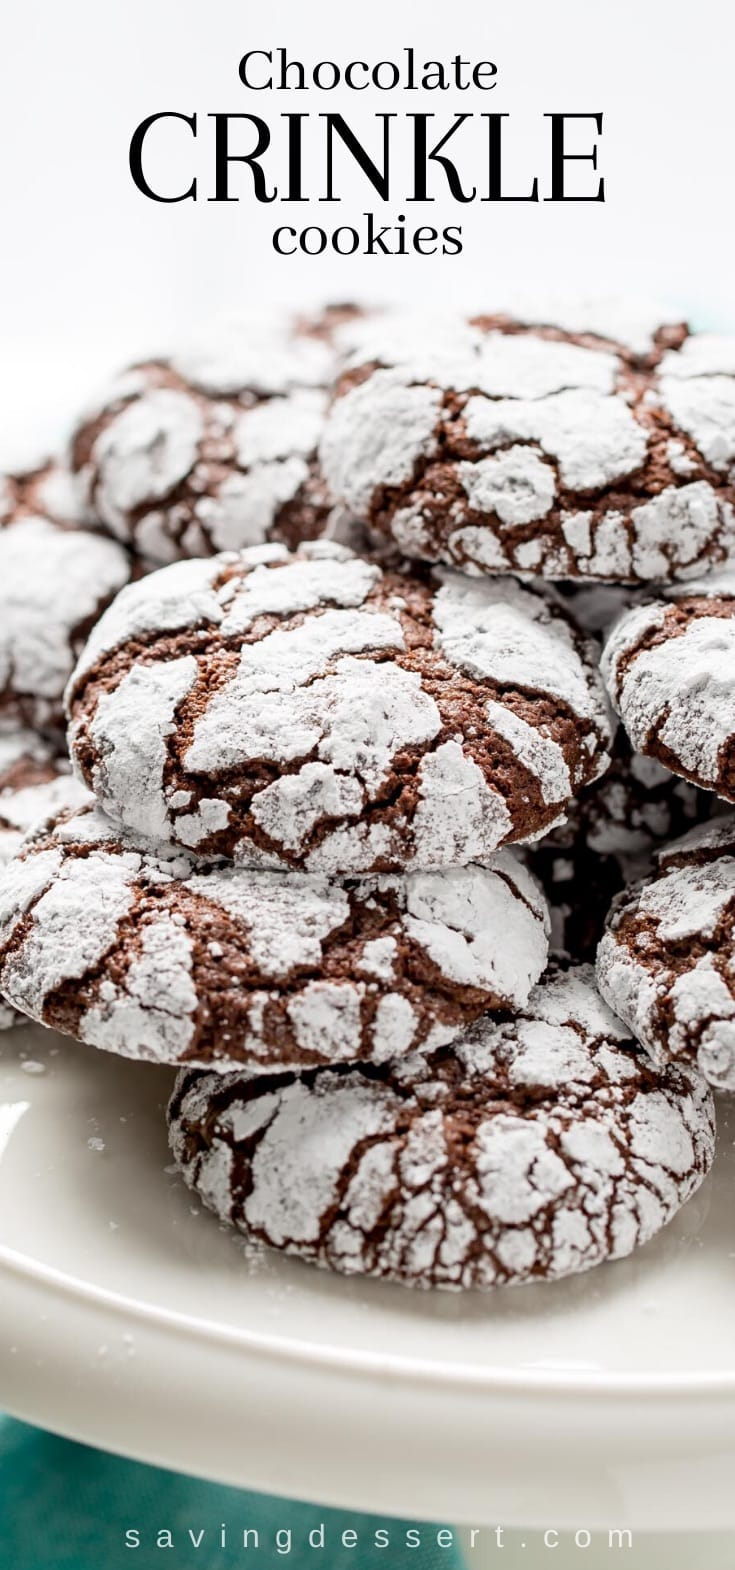 a plate of chocolate crinkle cookies